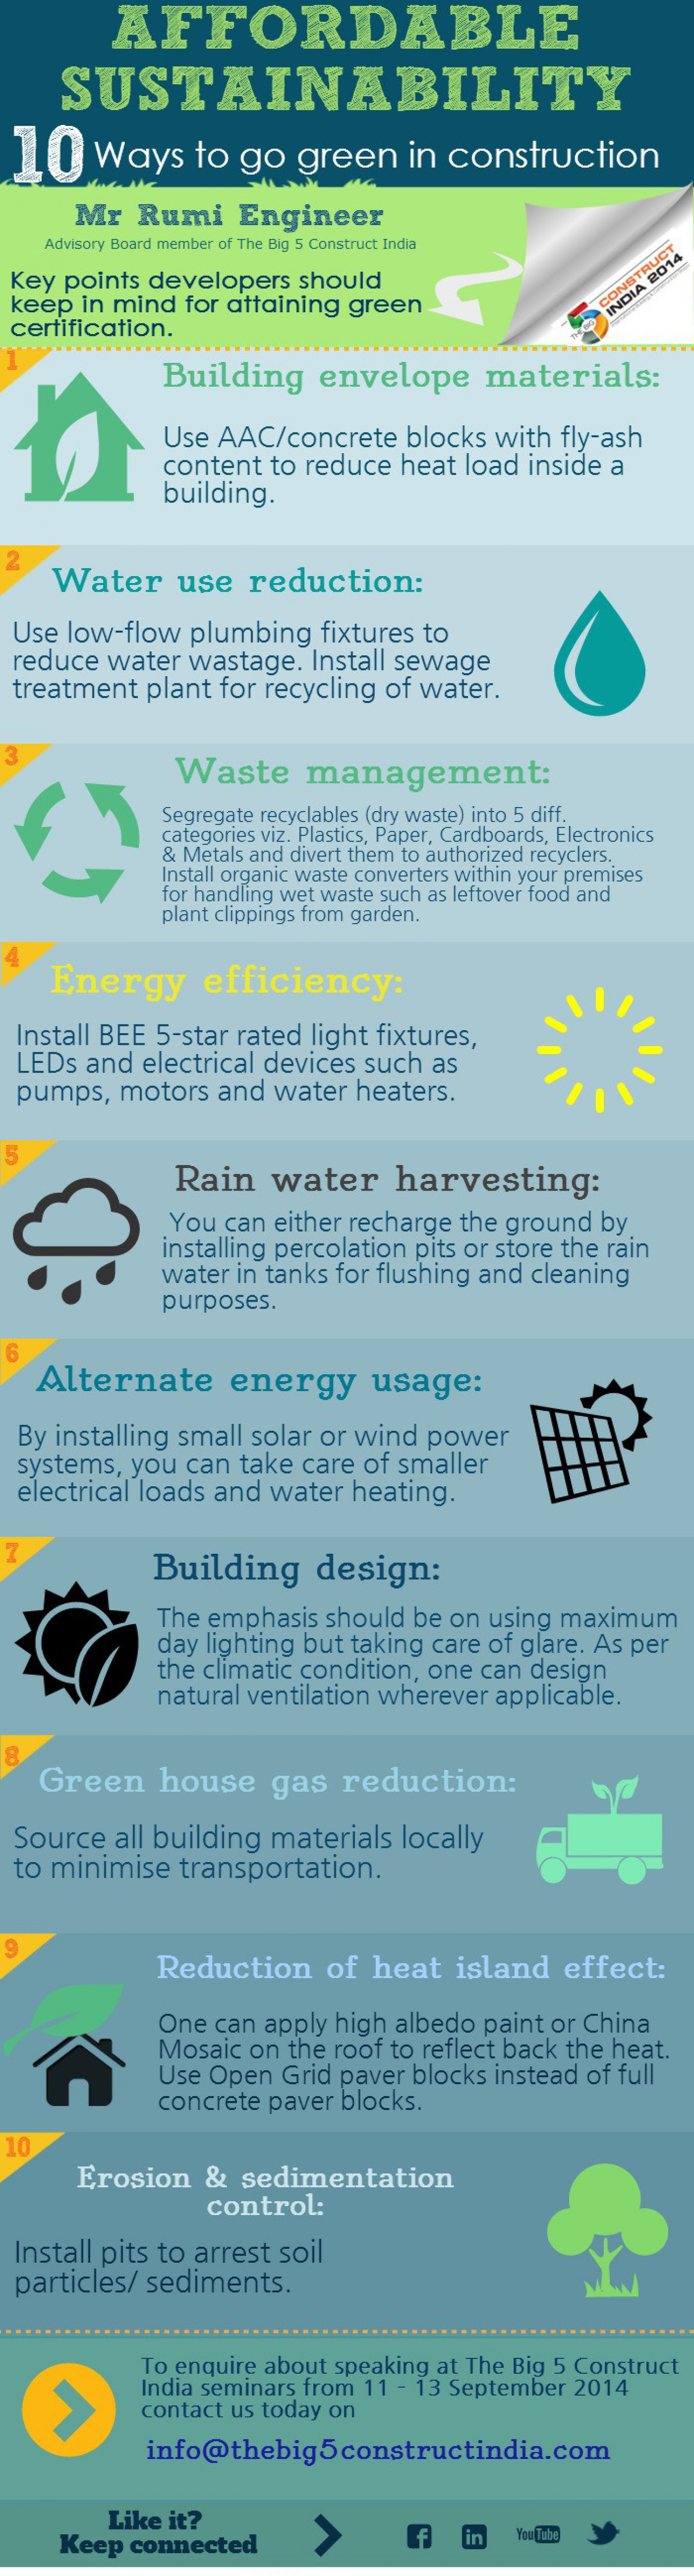 Affordable Sustainability: 10 Ways To Go Green In Construction Infographic